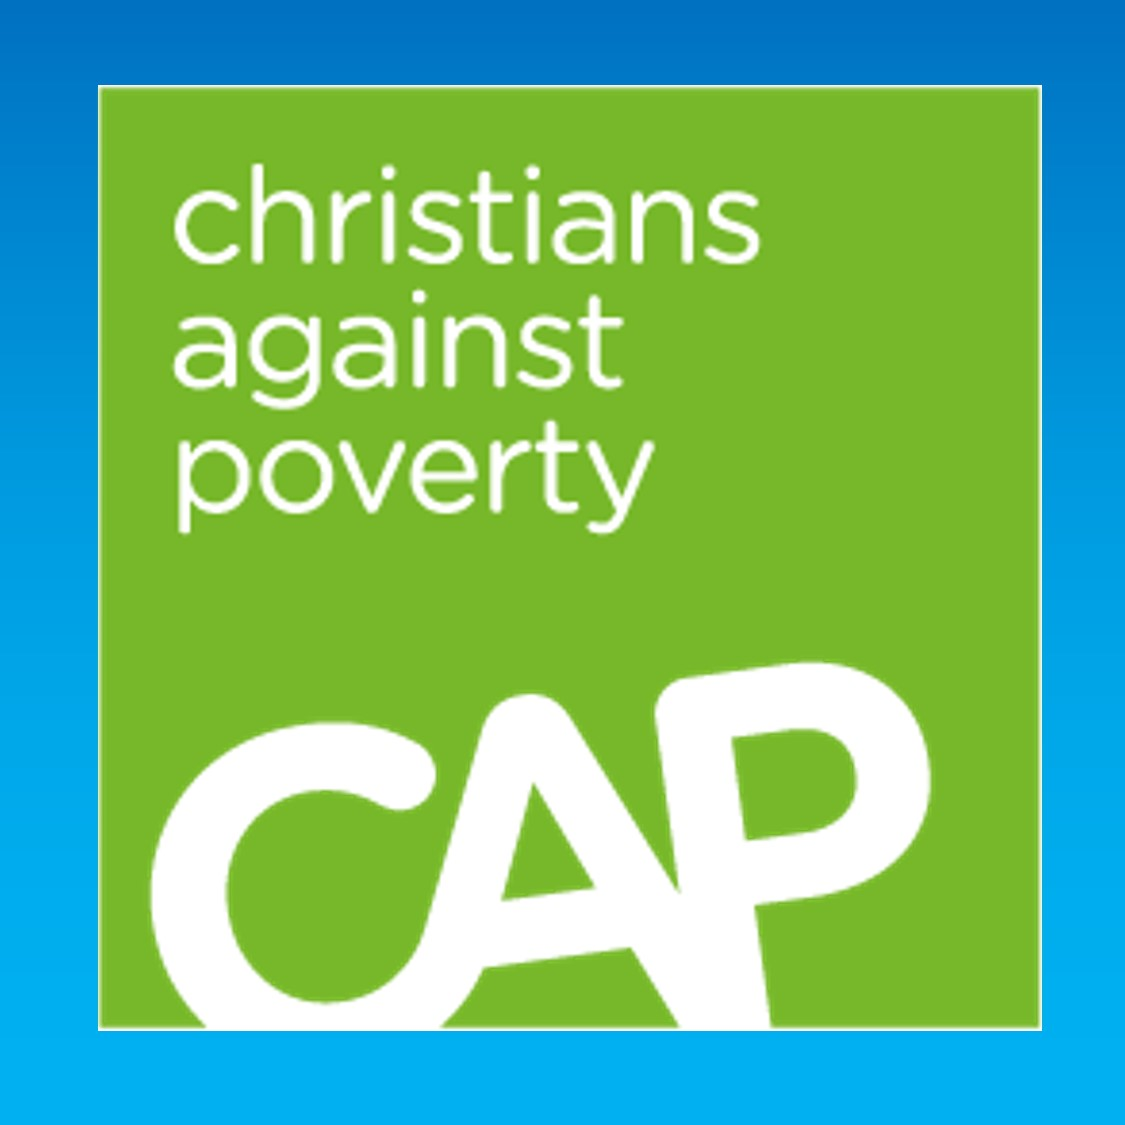 *Christians Against Poverty (CAP)*In 2014 we partnered with debt counselling charity Christians Against Poverty (CAP) to set up the Epsom & Ewell CAP Debt Centre, led by Clare Brown, Debt Centre Manager. If you are finding your debts difficult to manage, call CAP on Freephone 0800 328 0006. They will have a confidential chat with you on the phone and can arrange for someone from the Epsom & Ewell CAP Centre to meet you in the privacy of your own home. You may think that your situation is impossible, but there is hope. CAP's friendly team can provide a real solution to your debts and is completely free. CAP have helped thousands of people in situations like yours. Find out more at capuk.org or contact Clare Brown clarebrown@capuk.org